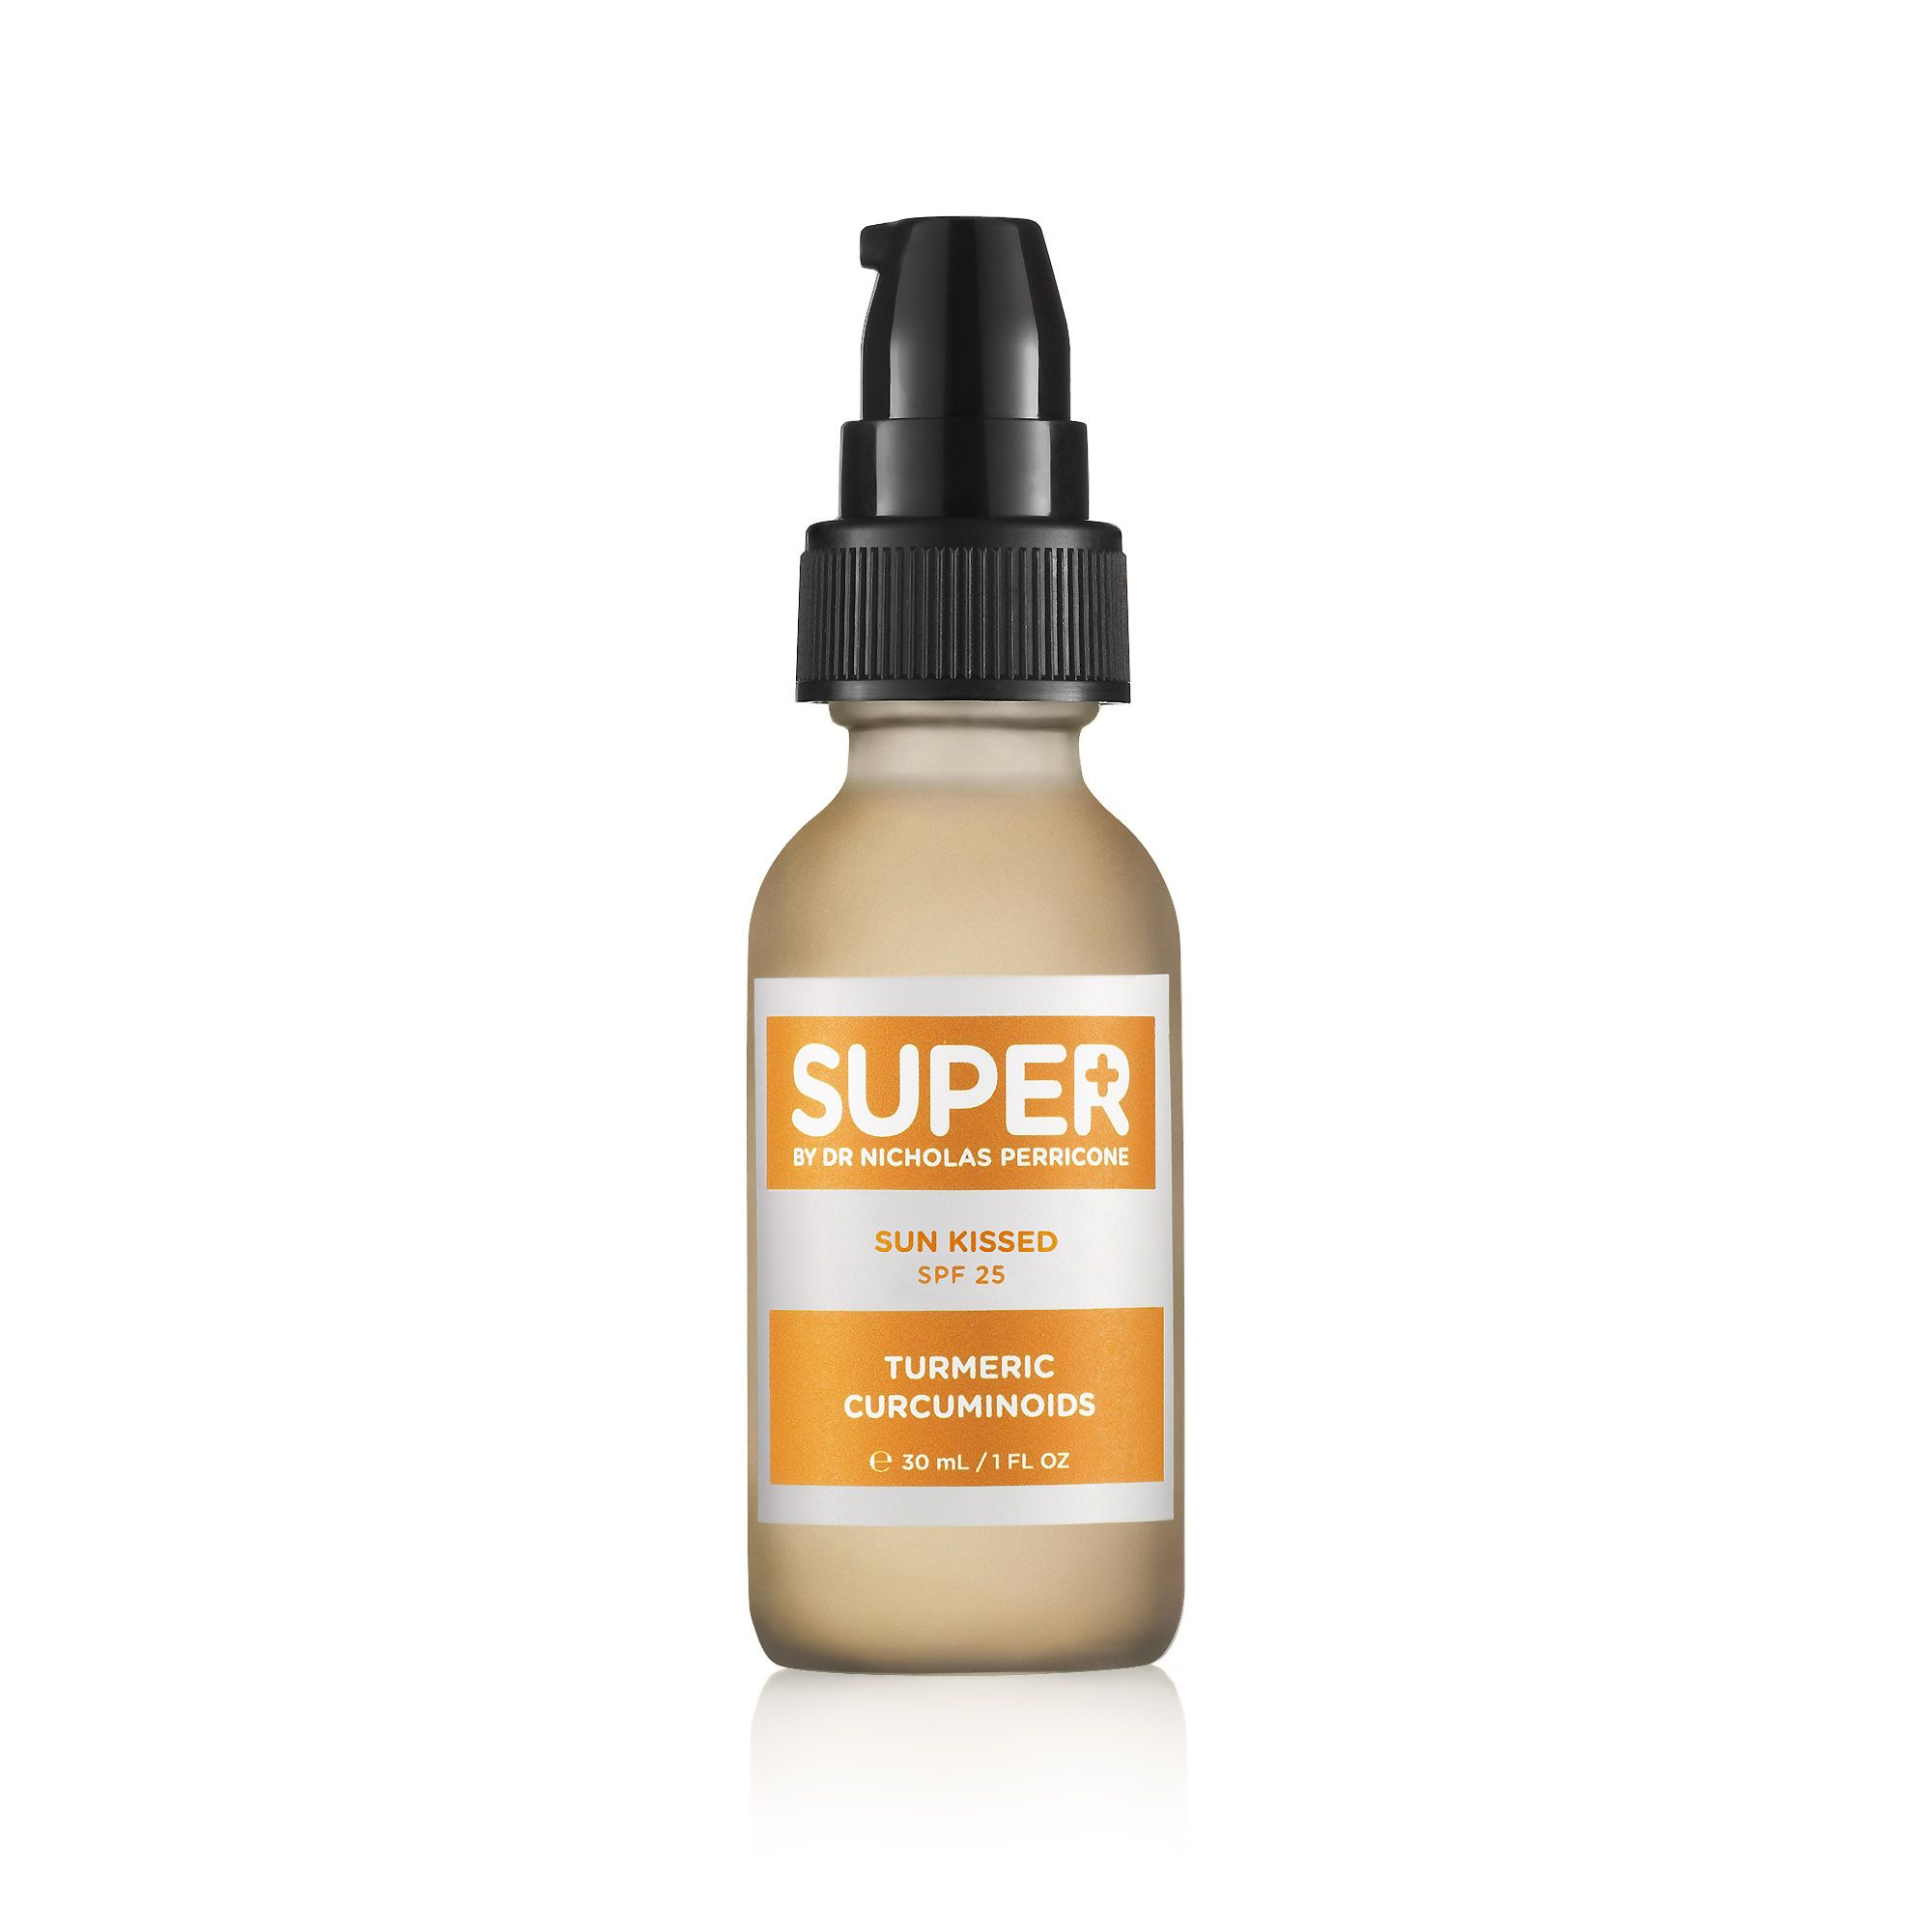 SUPER Sun Kissed idratante viso colorato con Curcumina